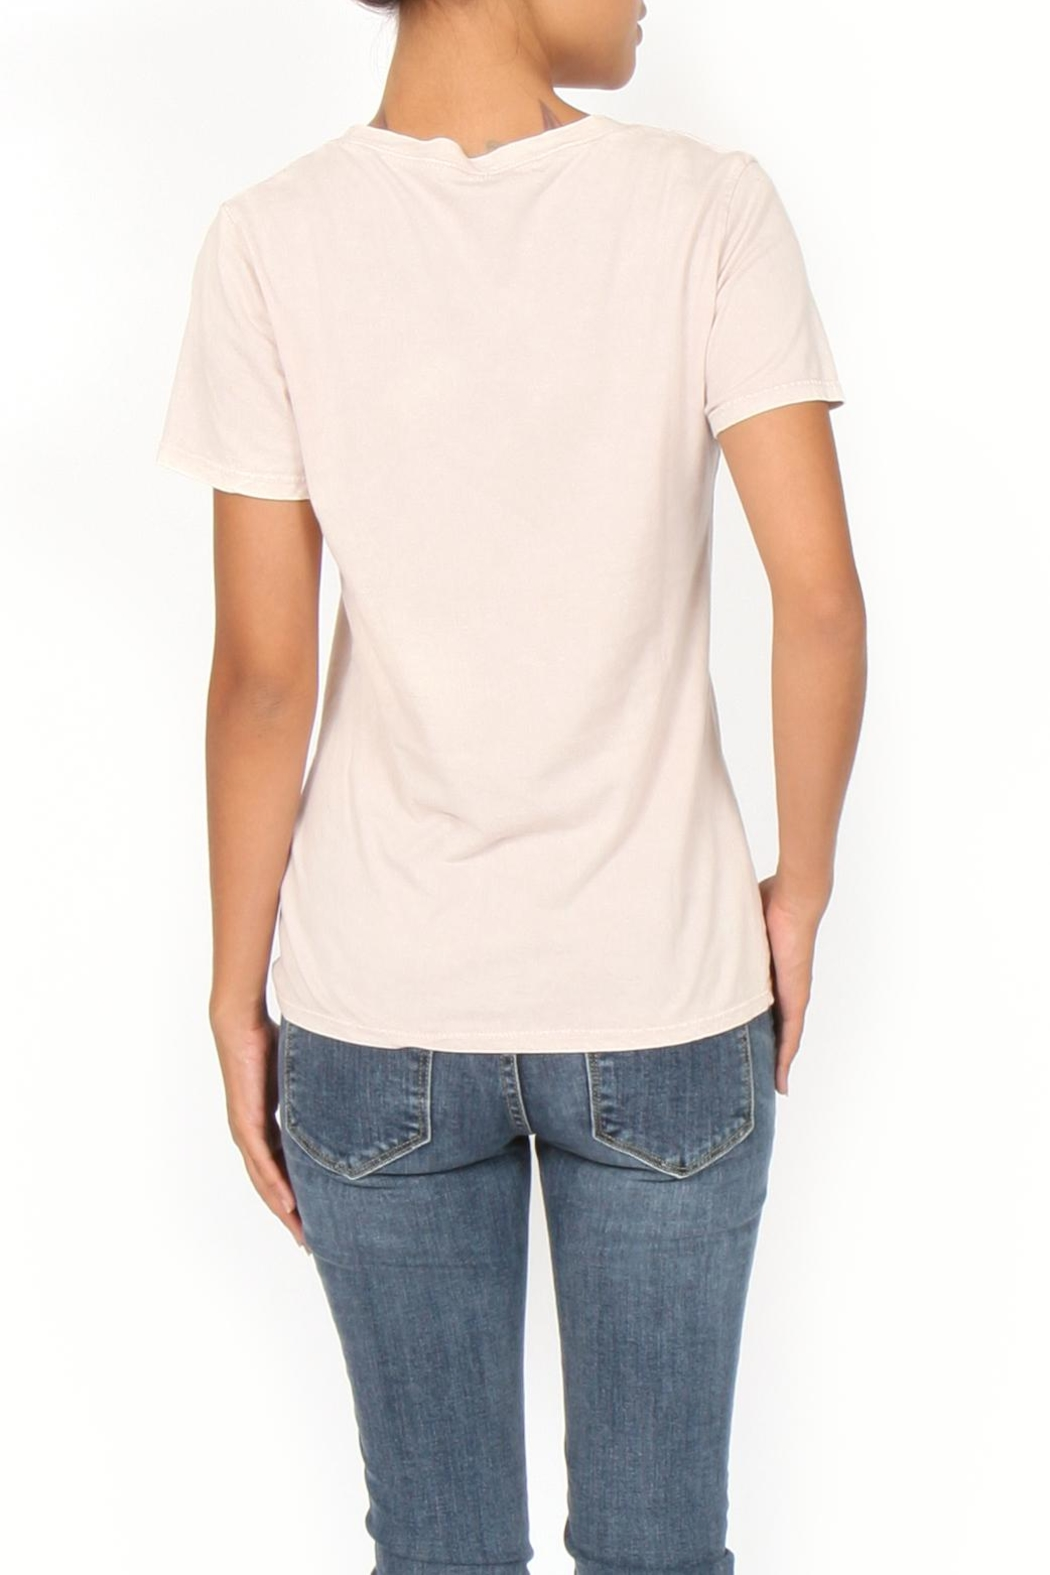 Project Social T Billy V Neck Tee - Side Cropped Image